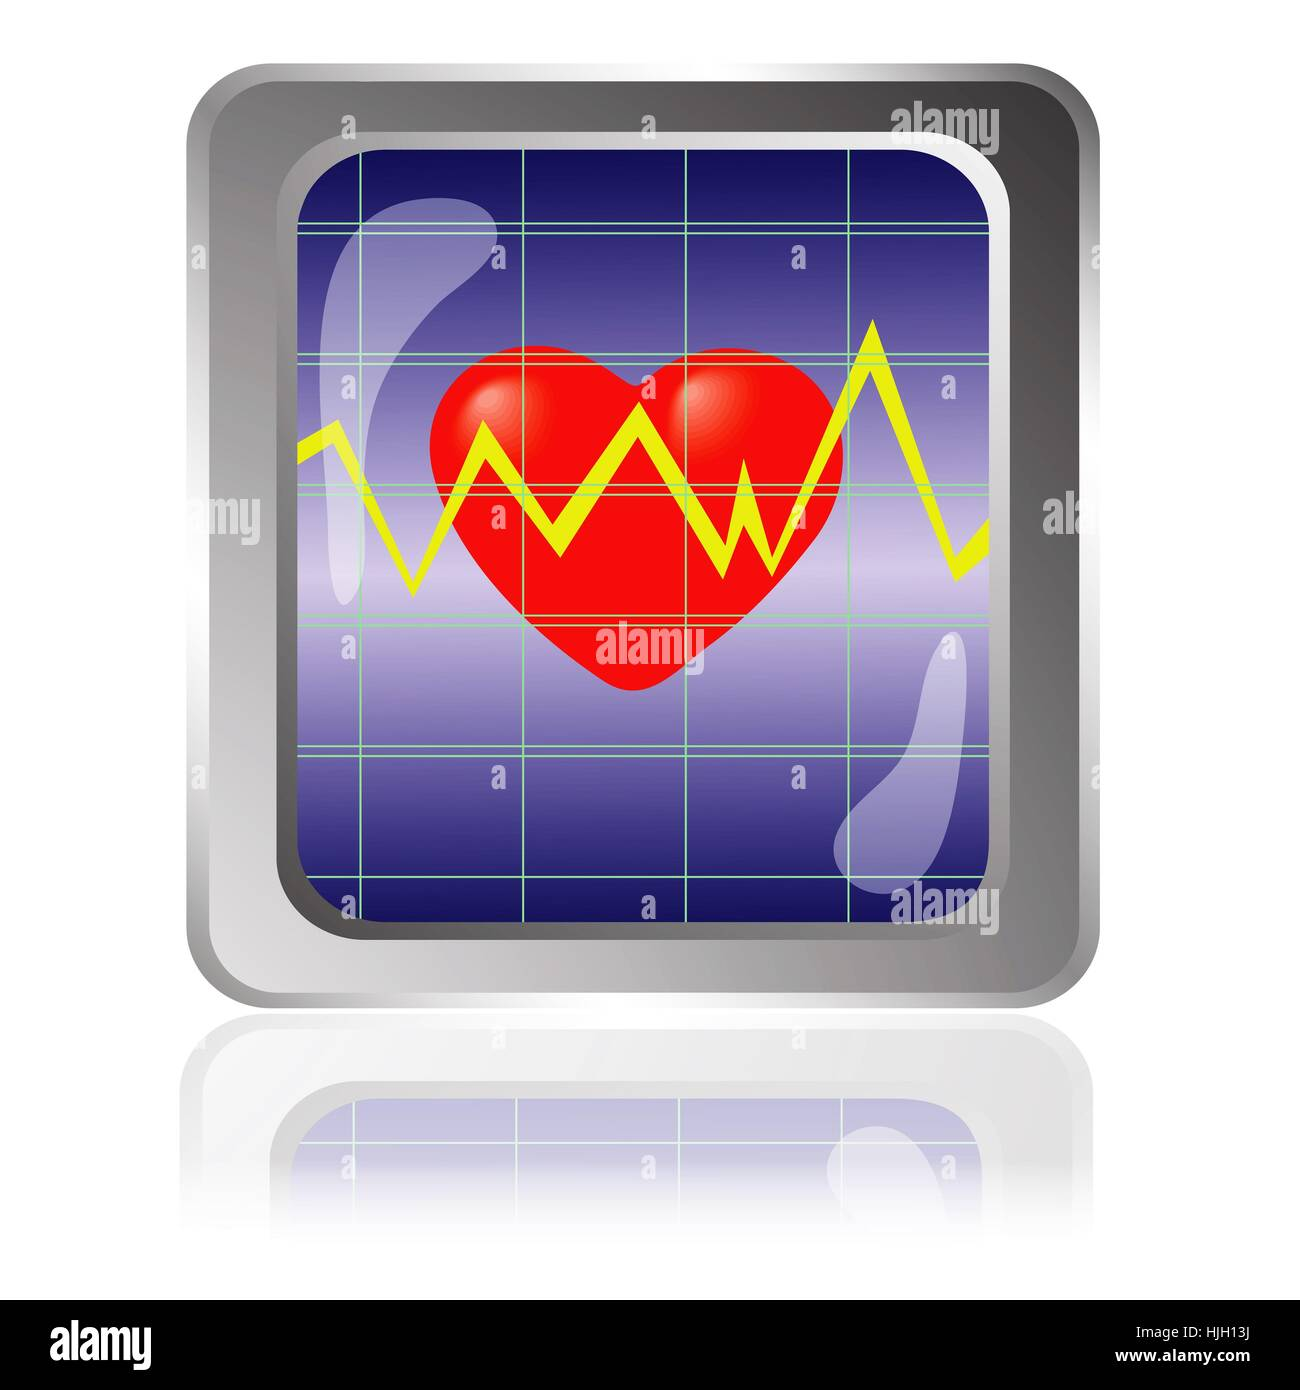 colorful illustration with cardiogram icon for your design - Stock Image